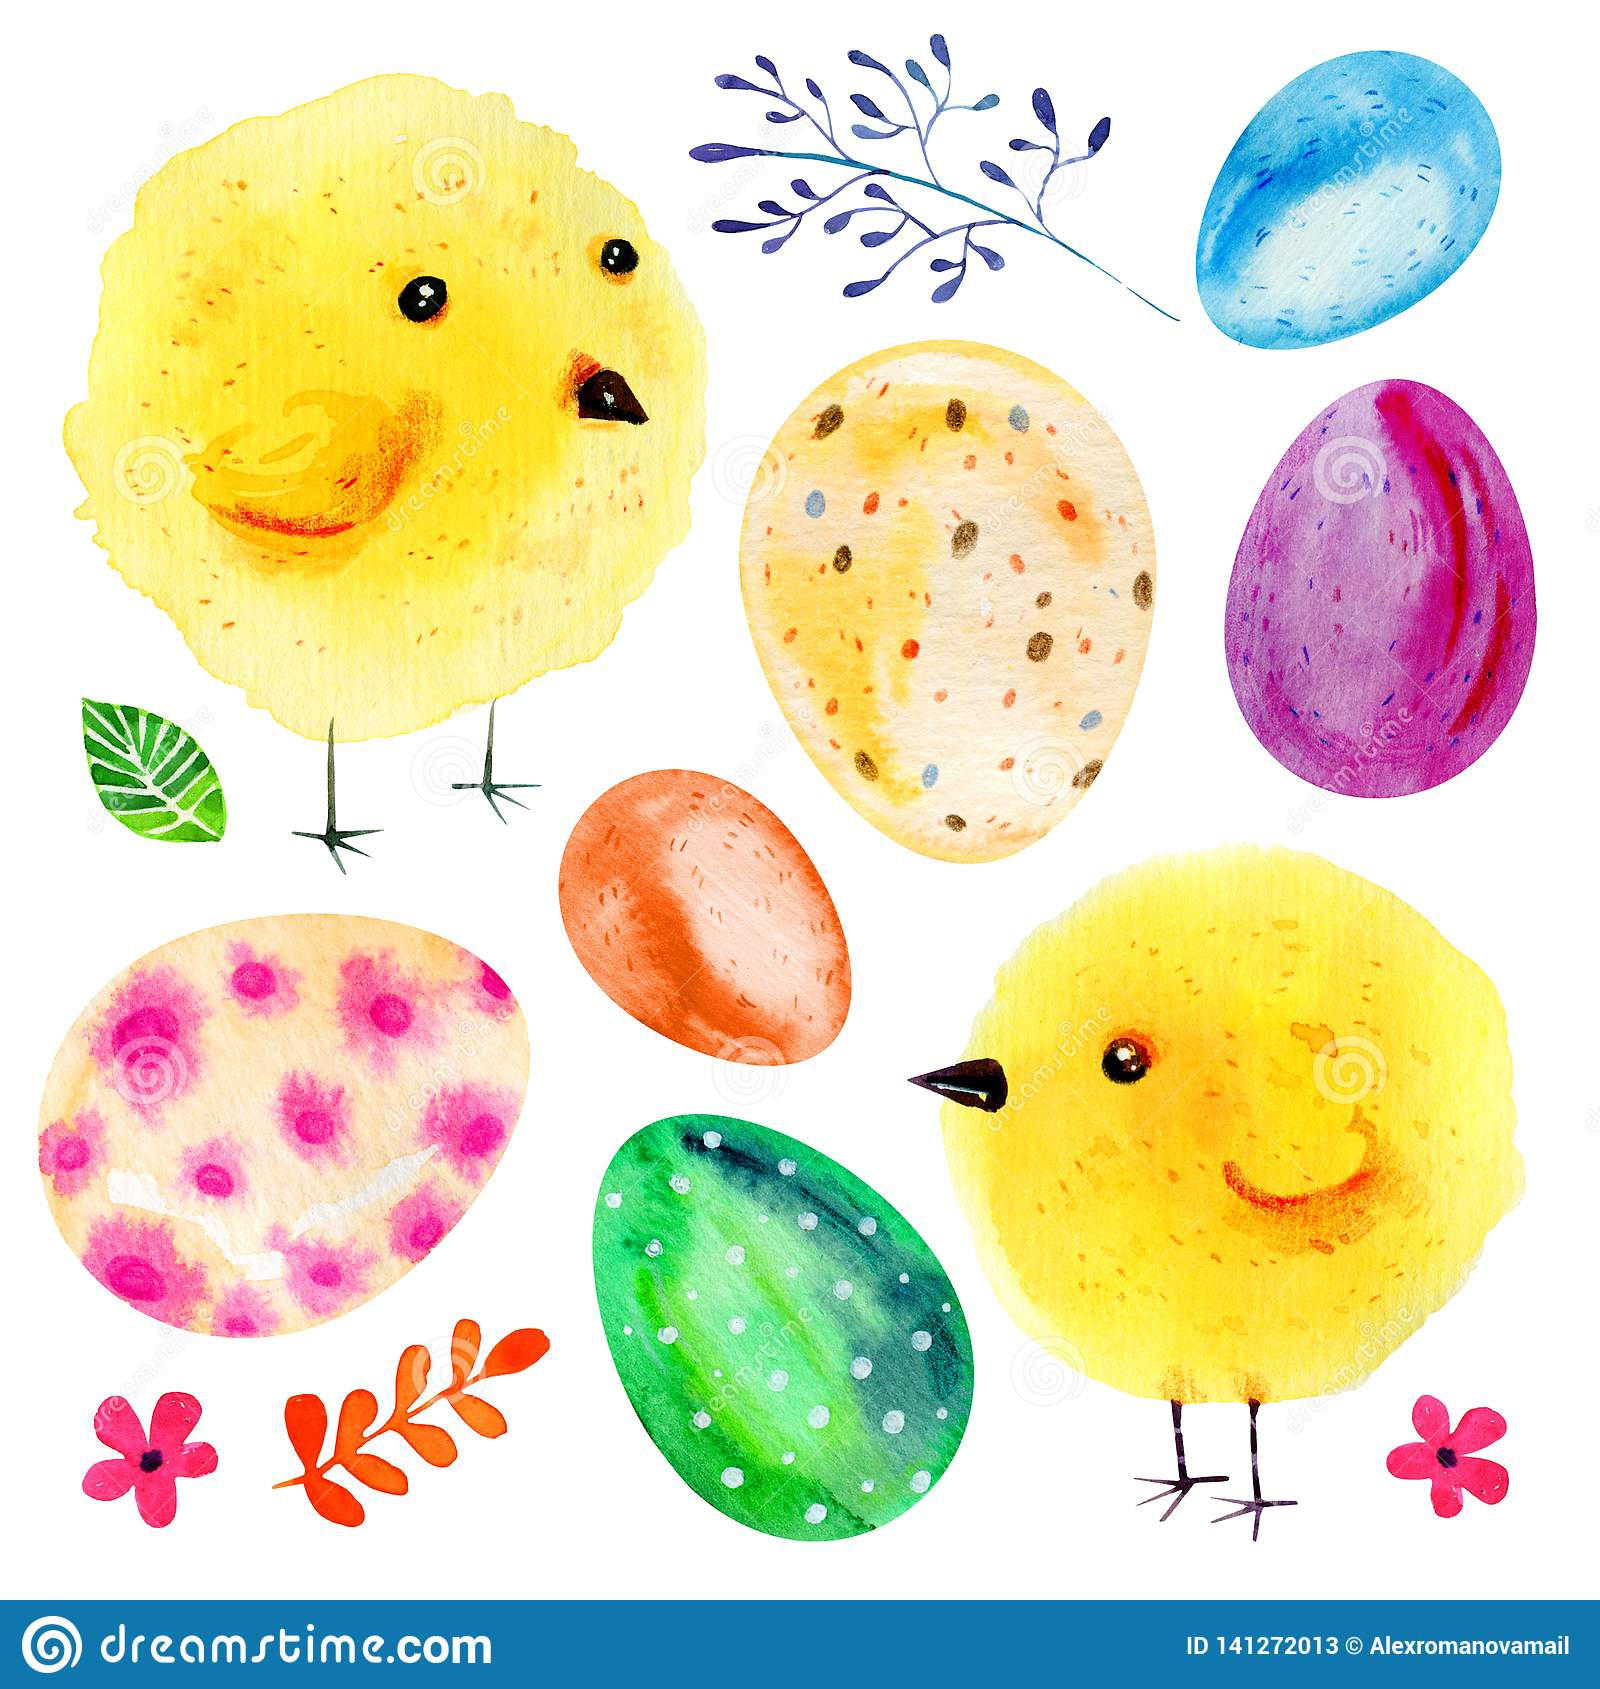 Cartoon yellow baby chikens, Easter eggs and flowers. Hand drawn watercolor illustration set